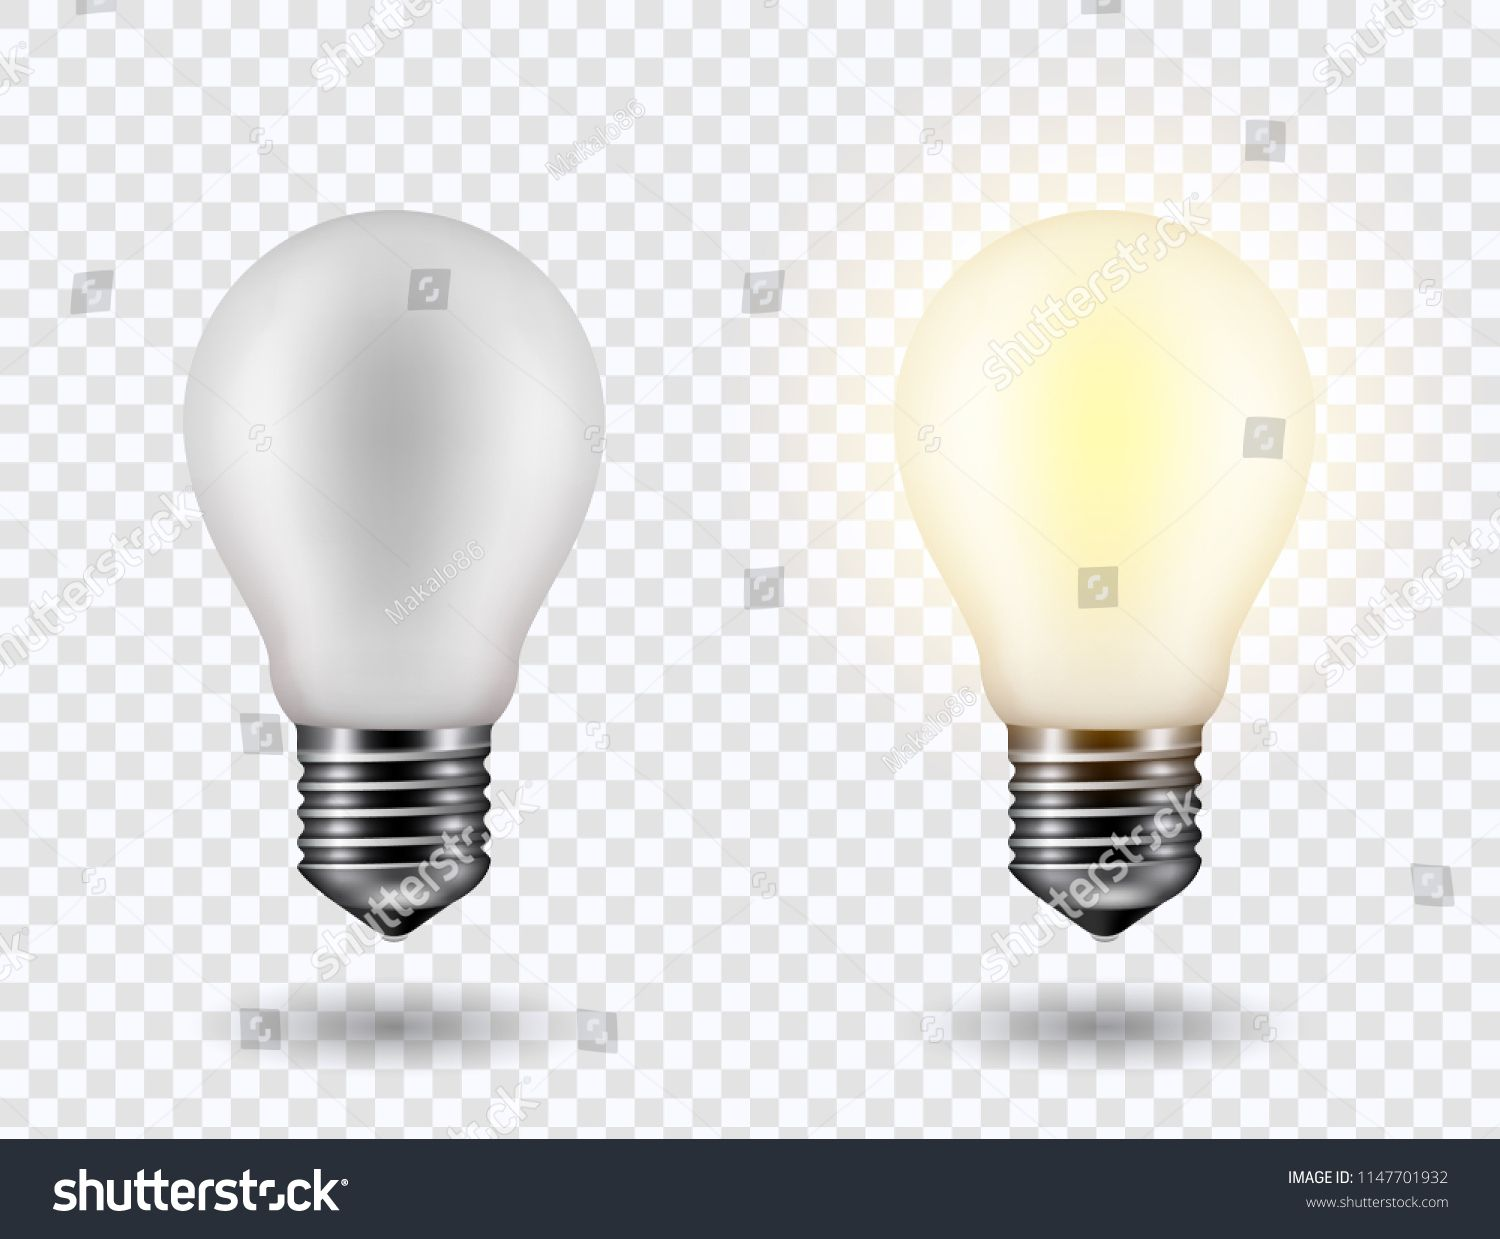 Vector Image Of A Light Bulb Realistic 3d Object On A Transparent Background The Effect Of Light The Symbol Of Creati Light Bulb Transparent Background Bulb